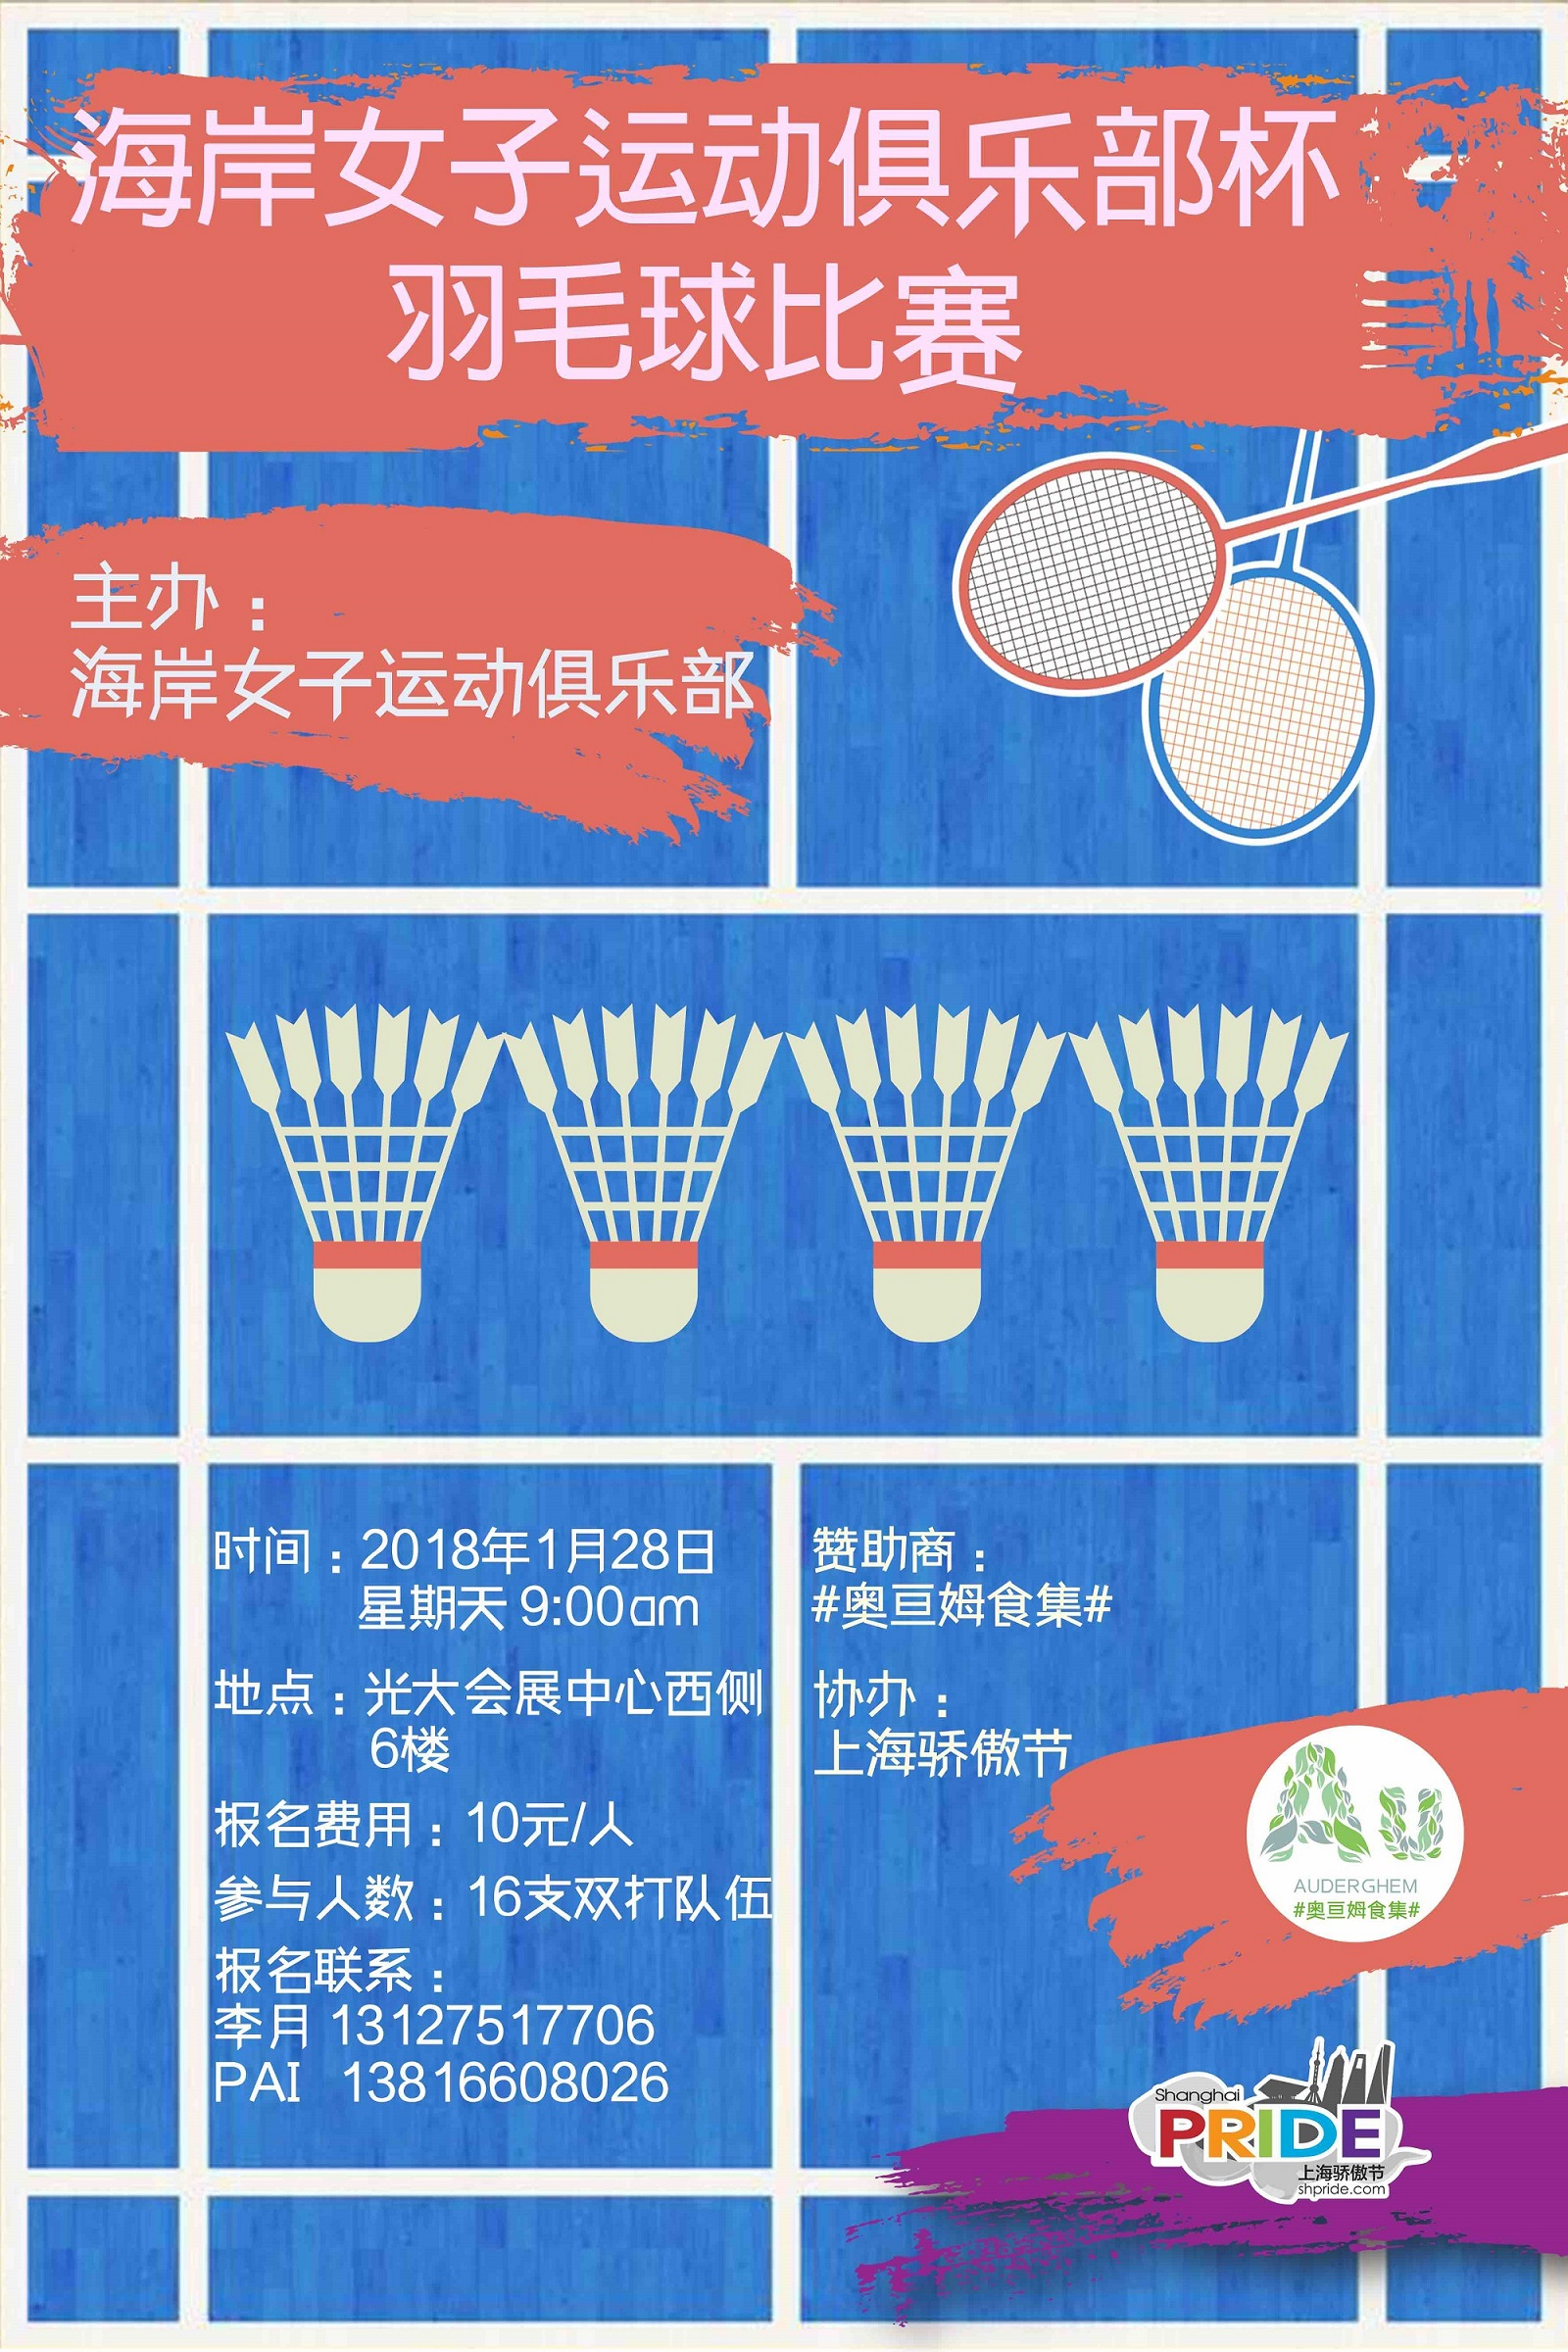 180119_Pride10_HELSC Badminton Championship_Poster_CH